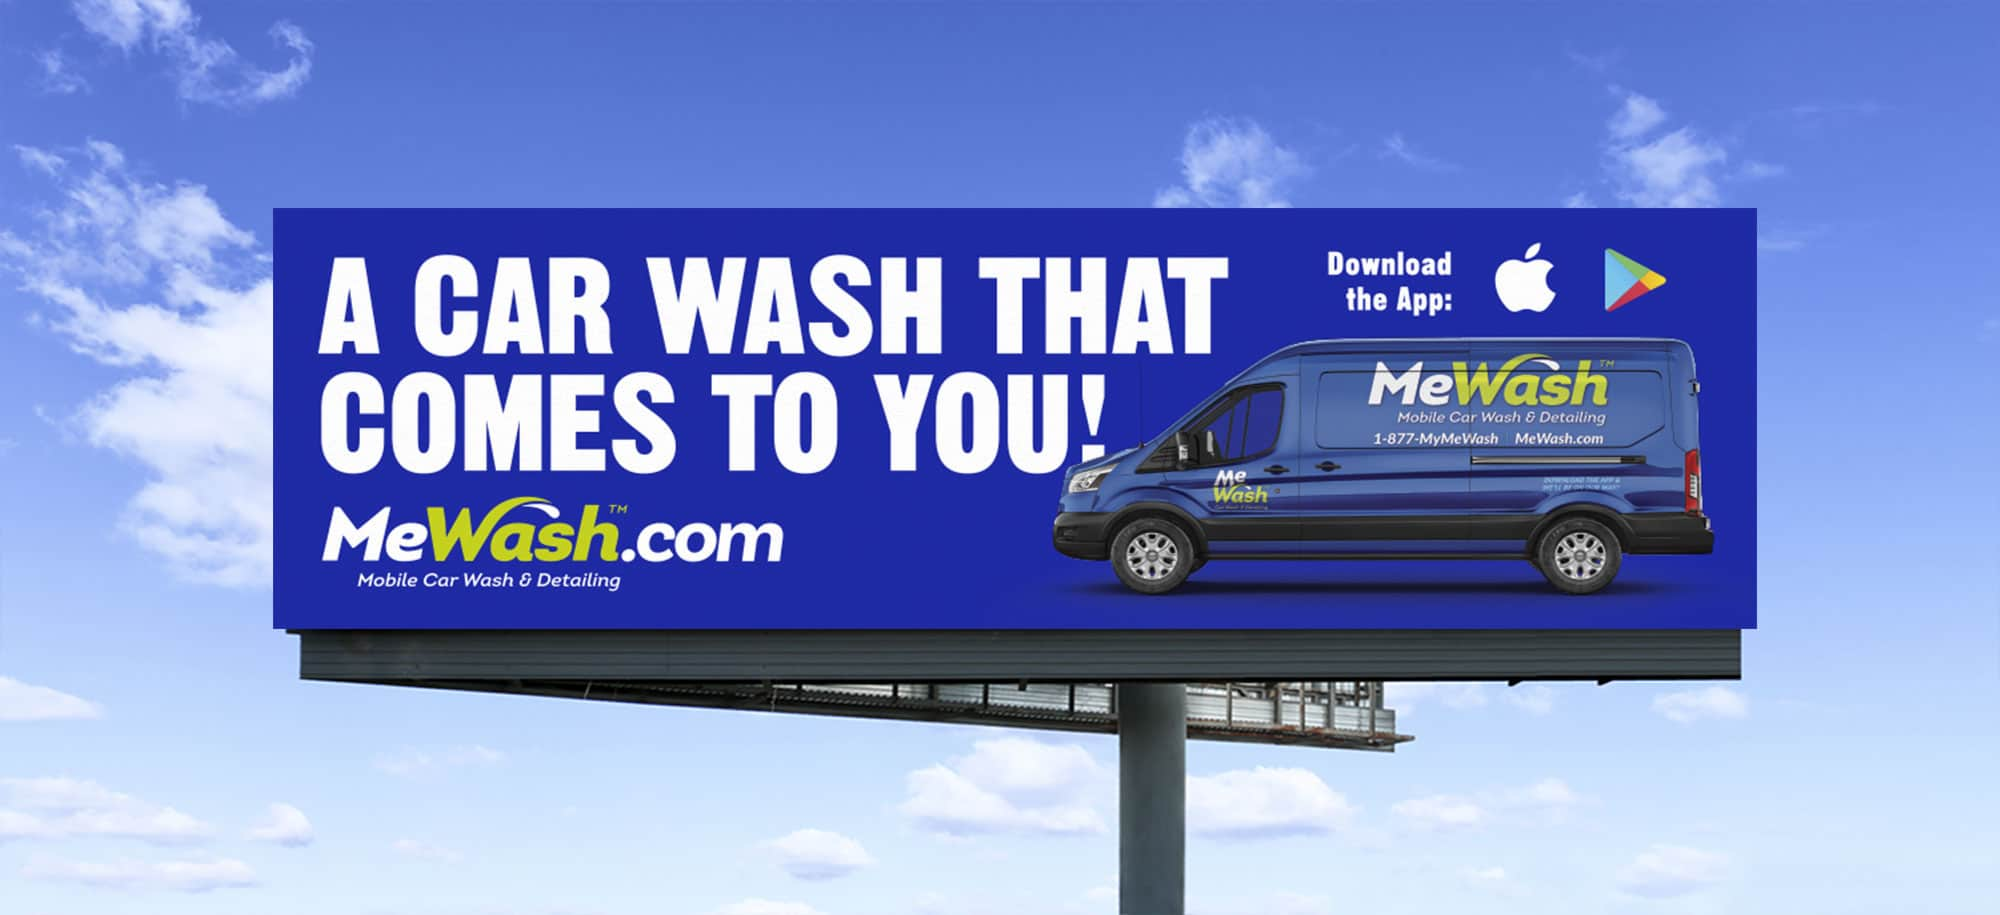 MeWash billboard design